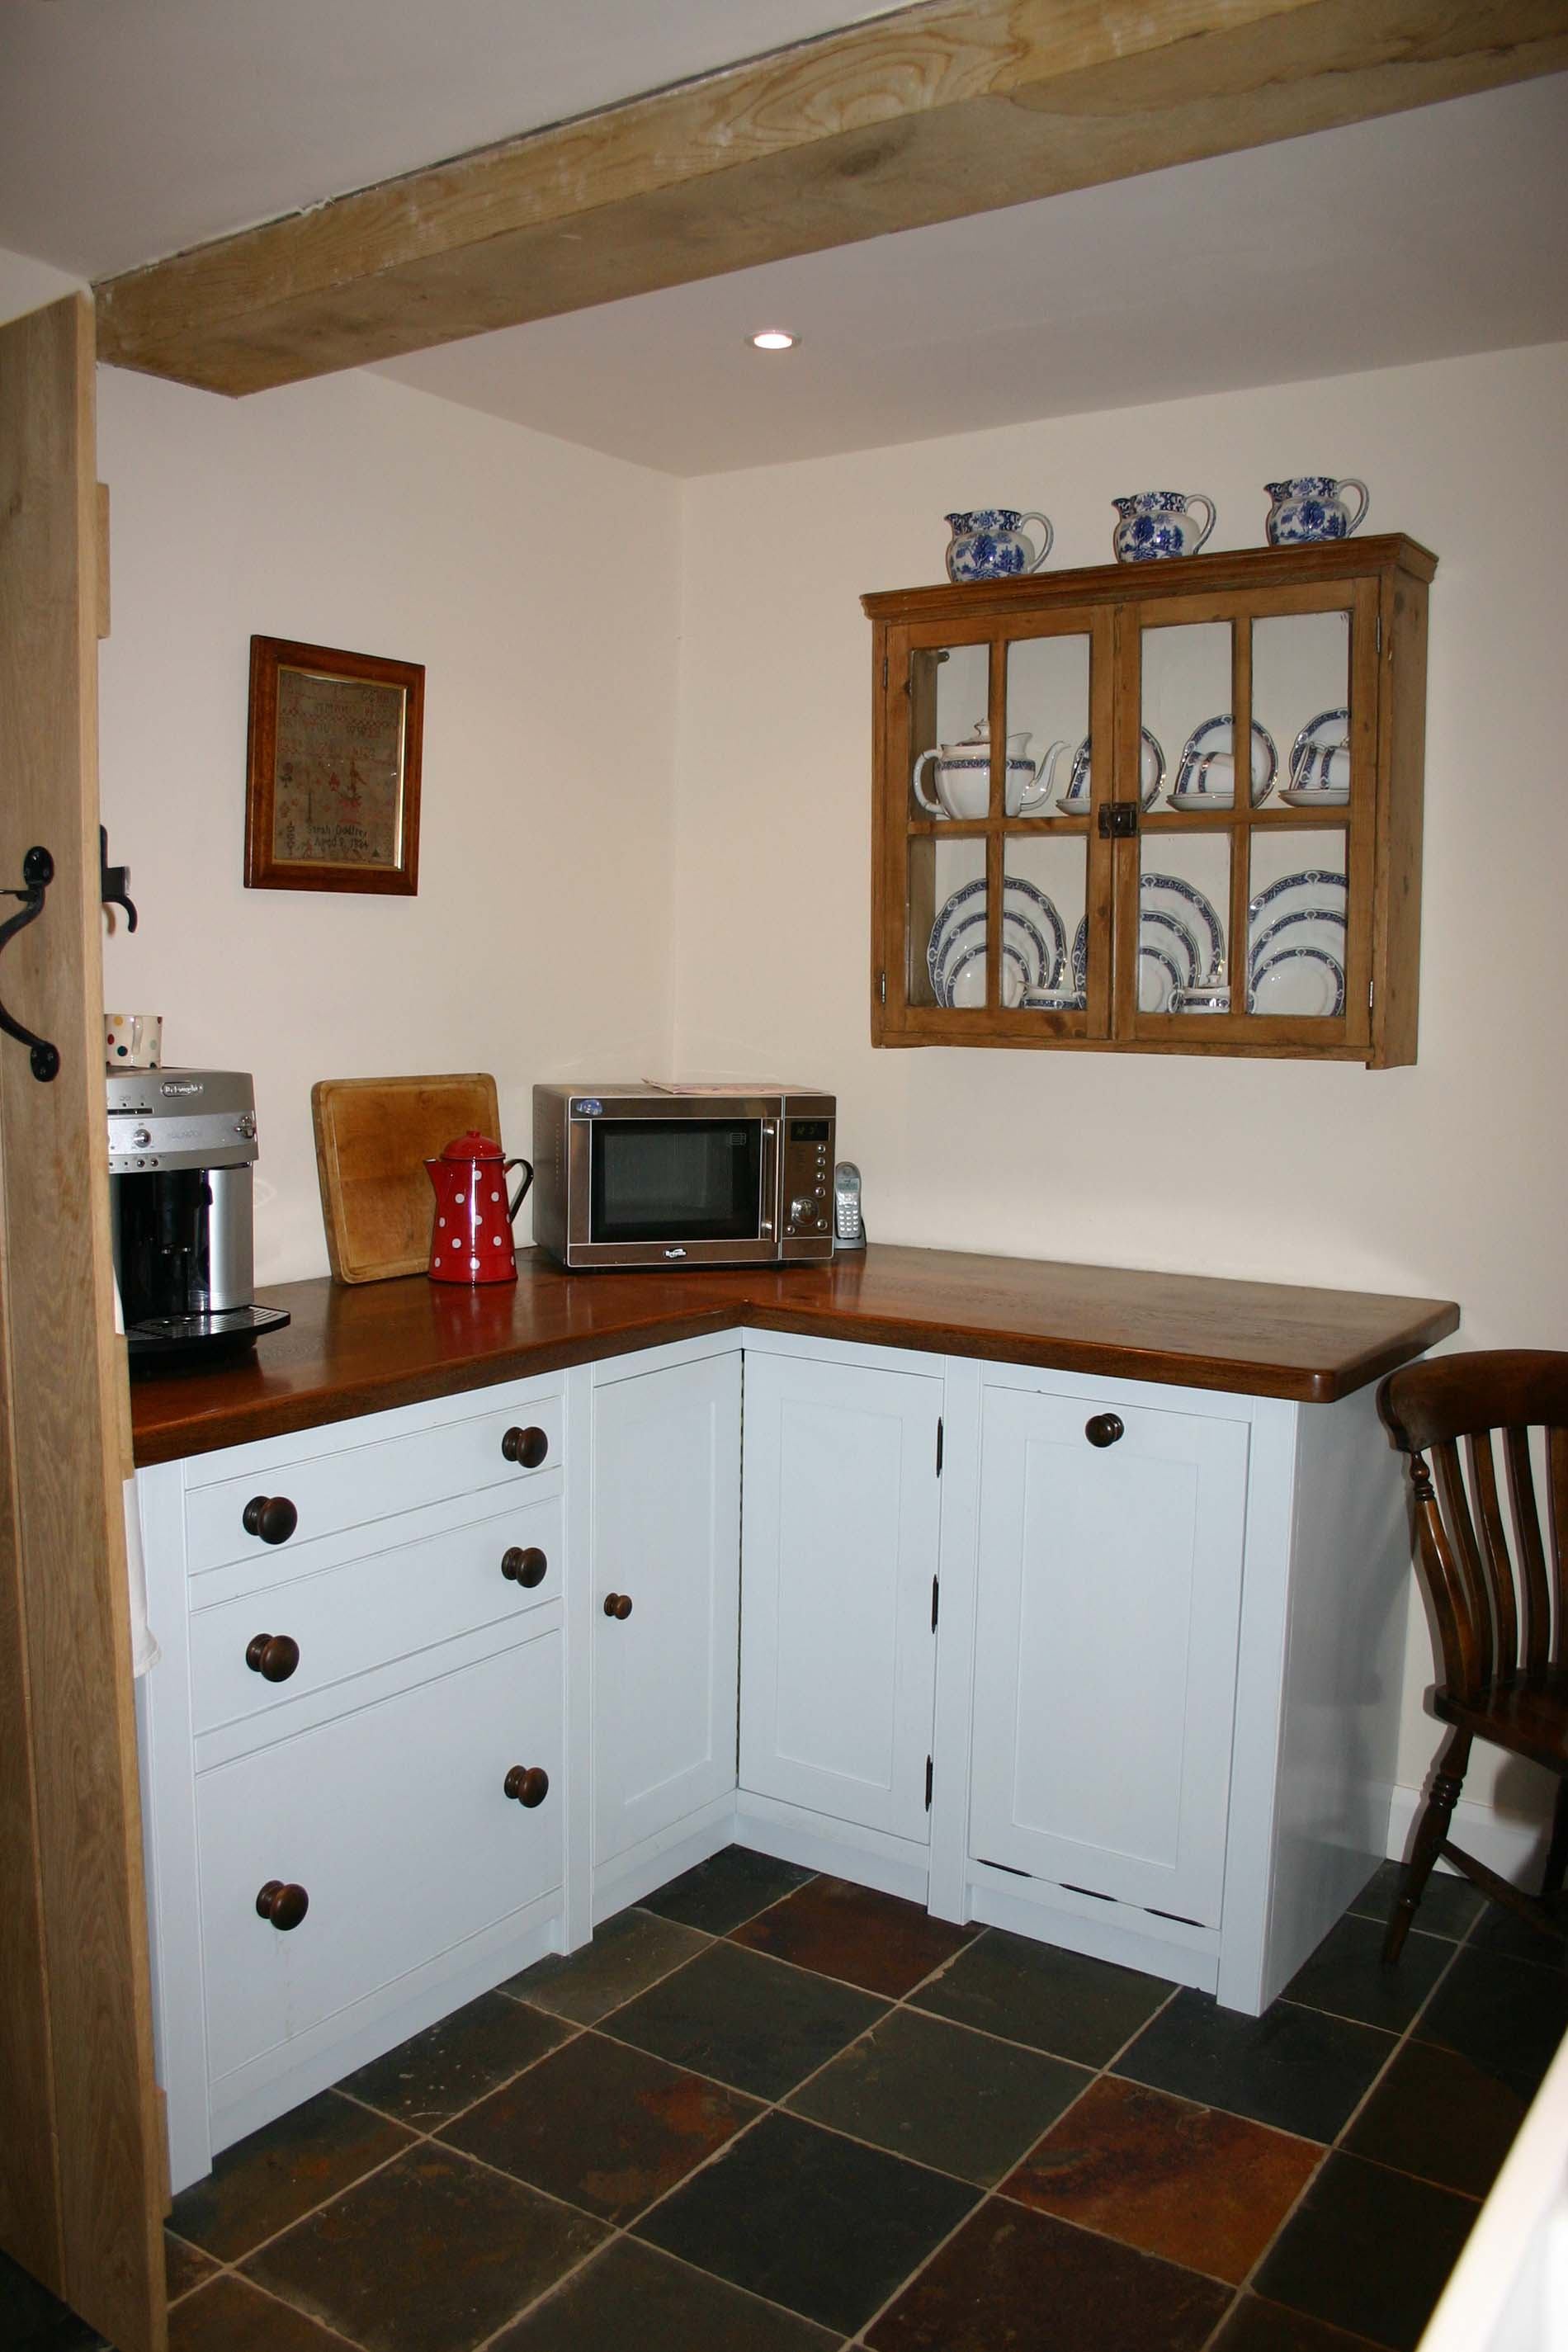 The Ministry of Pine antique pine furniture and free standing kitchens.